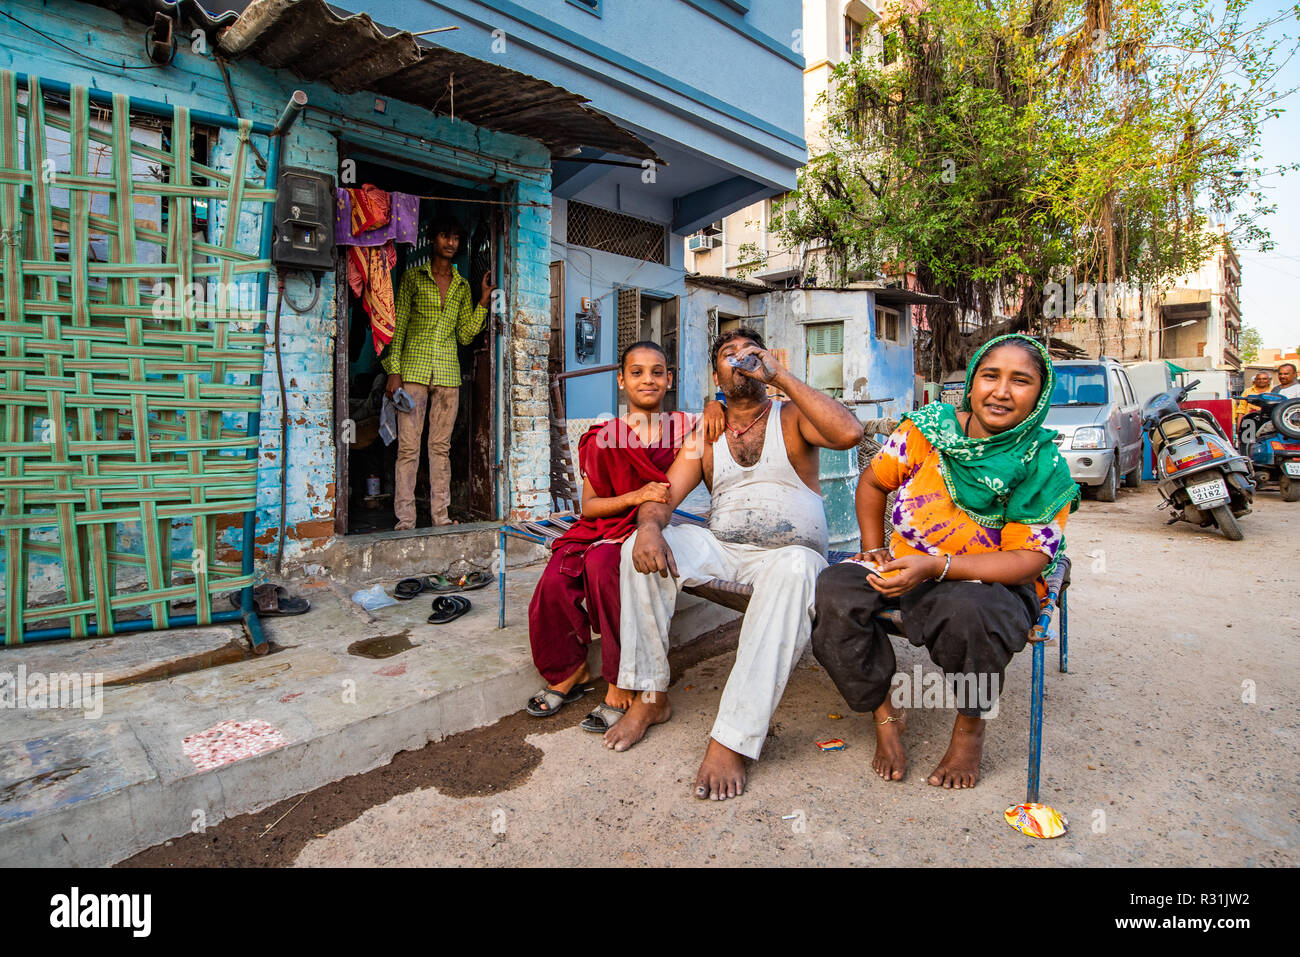 A man with his wife and sister sit in the street for a causal break, while a man stands at the doorway. Ahmedabad, India - Stock Image